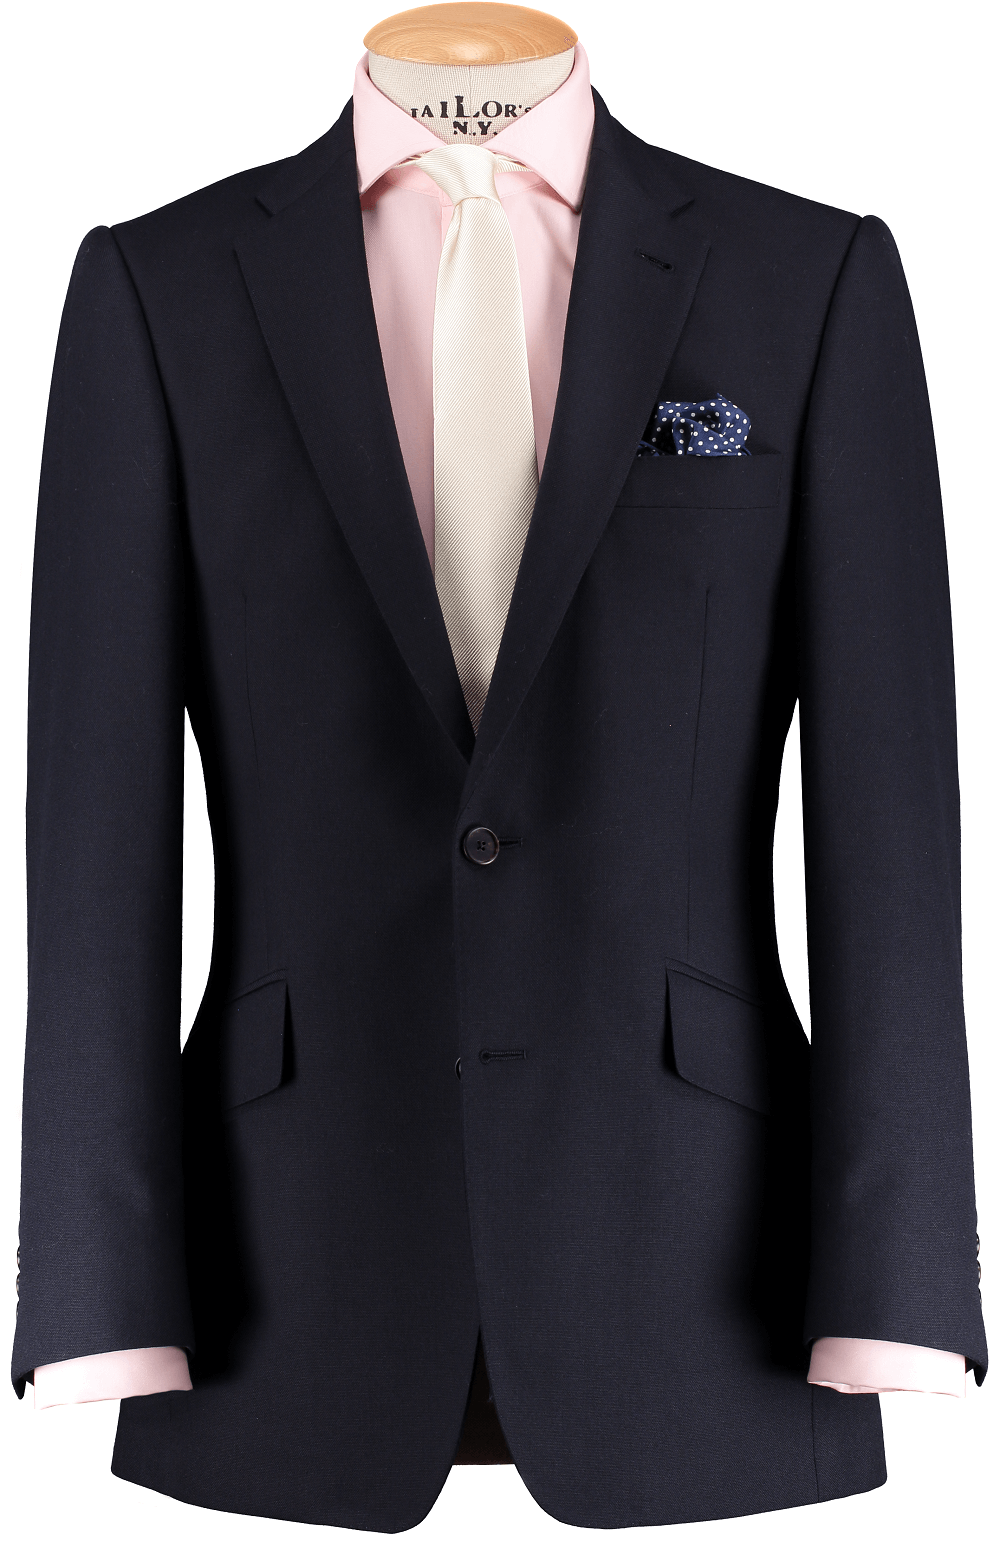 HW Navy Blue 2 Piece Suit